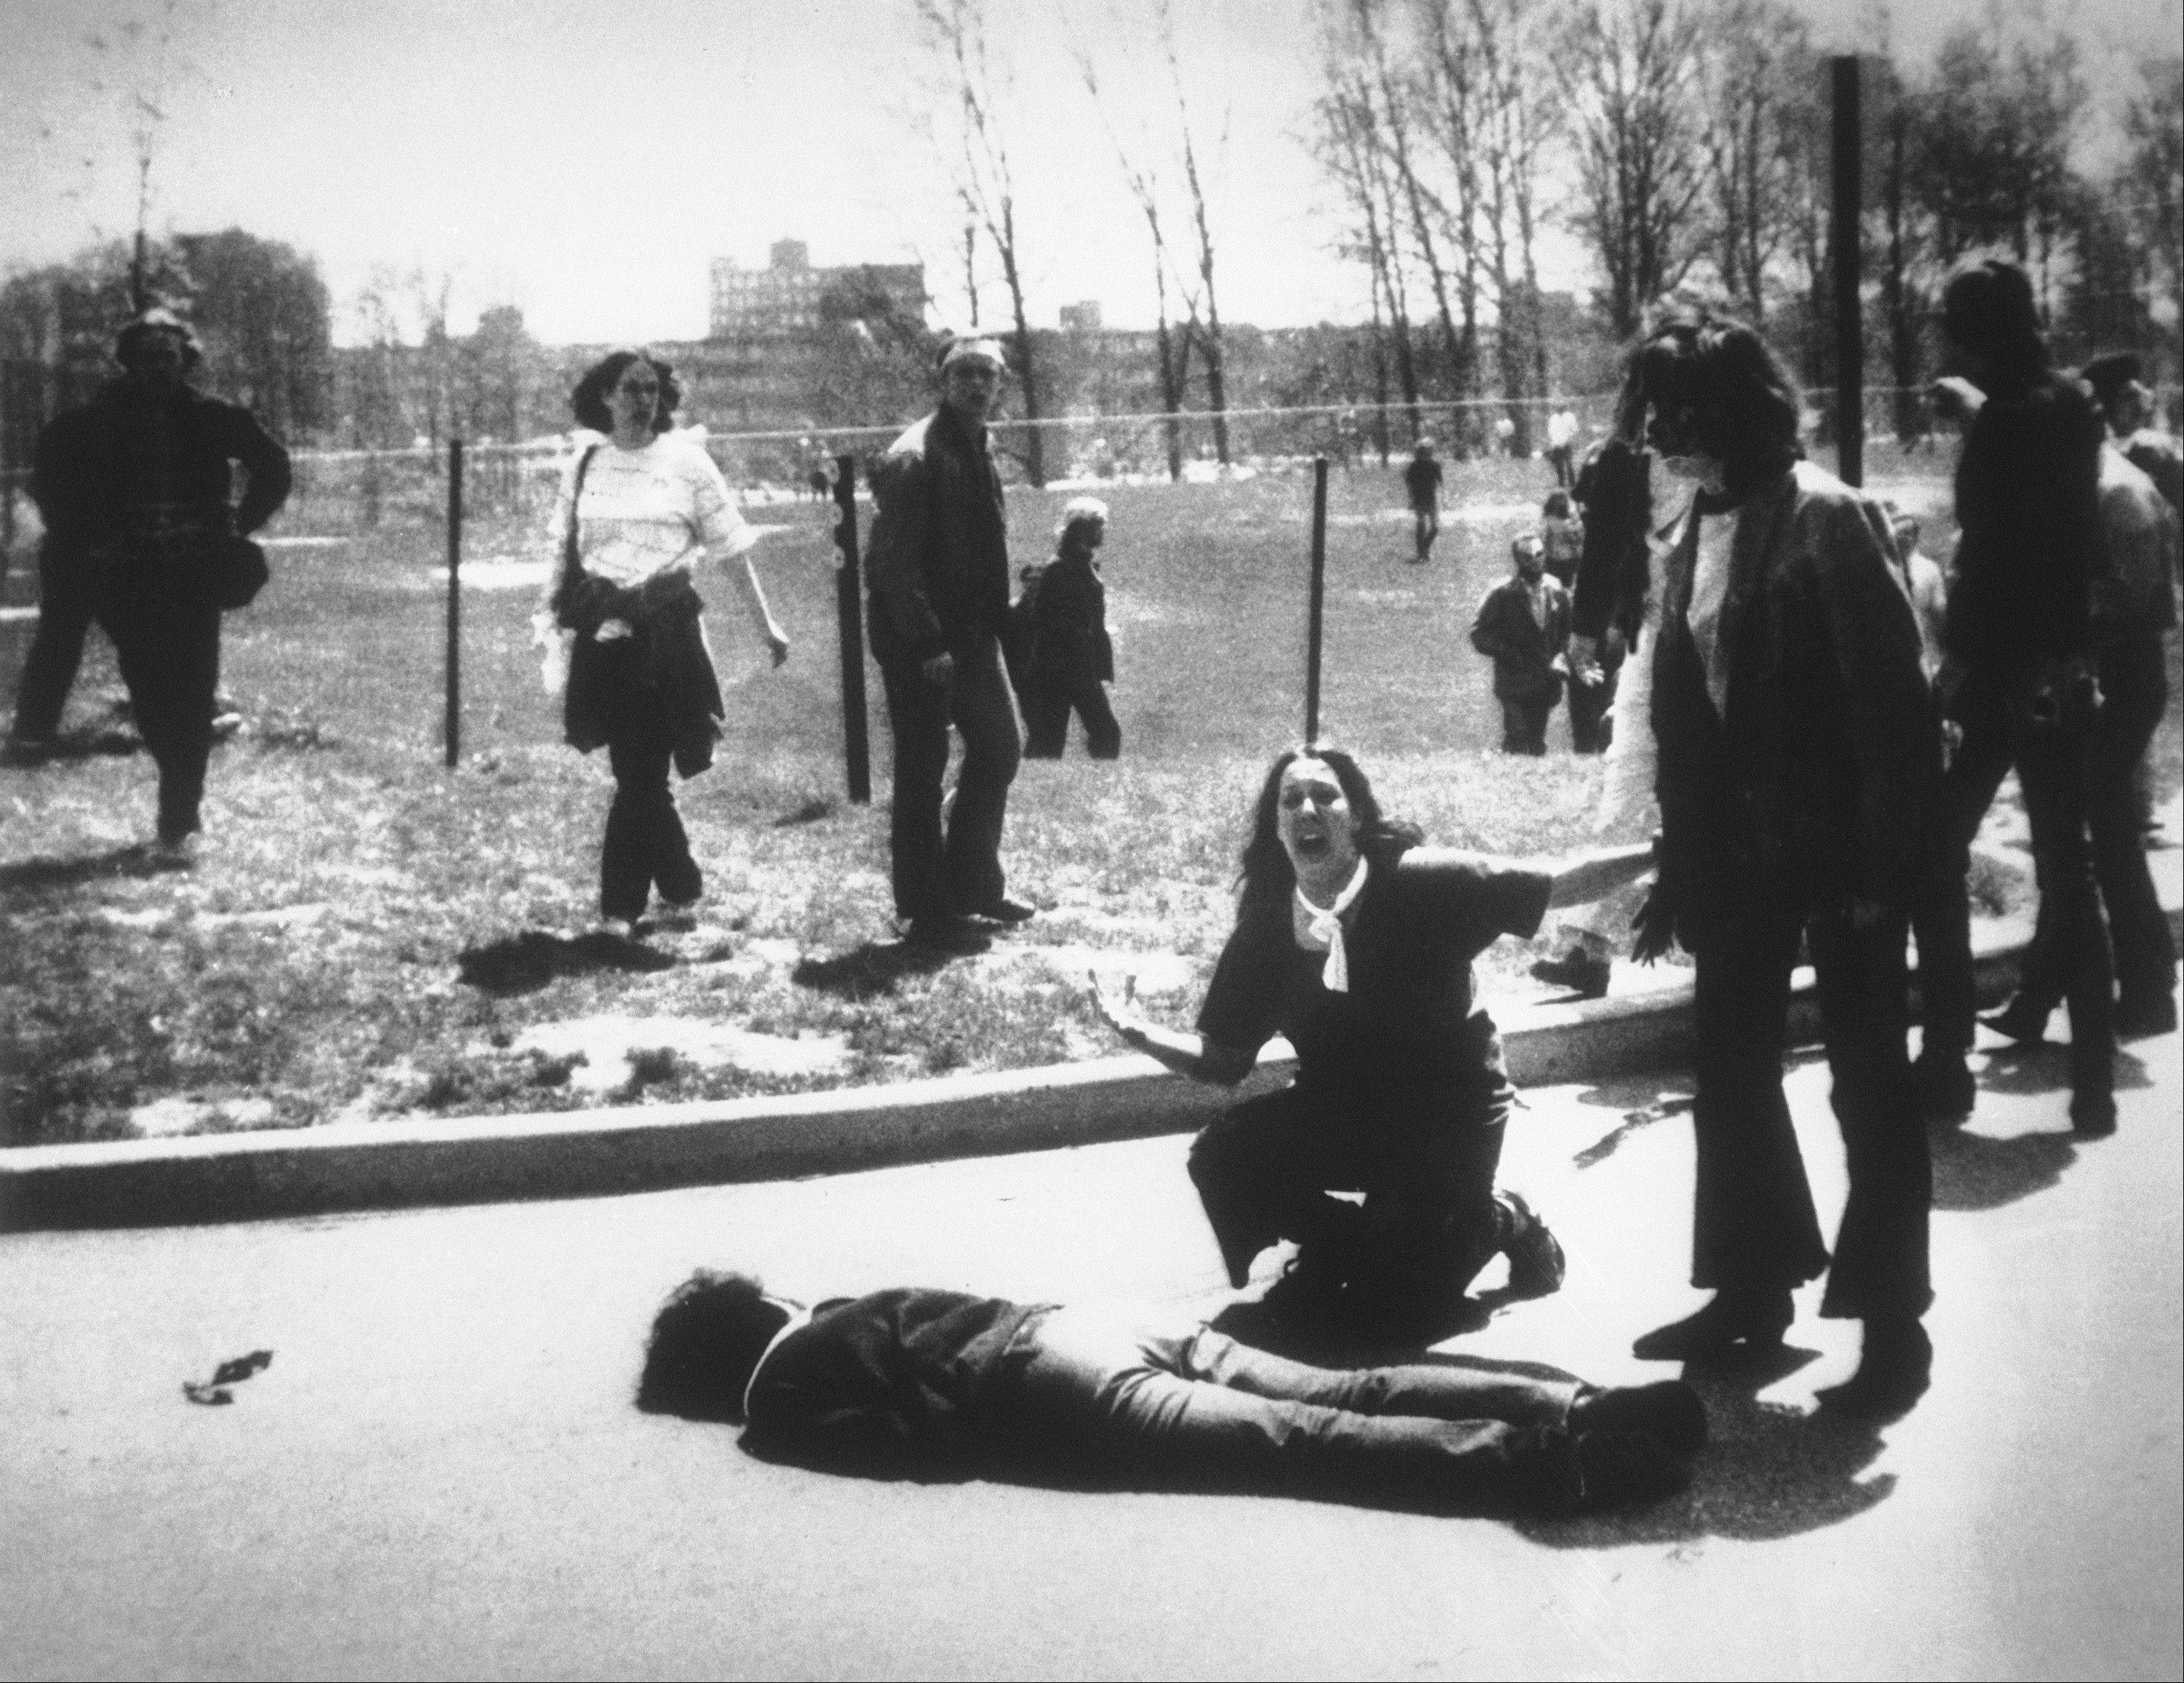 In this May 4, 1970, file photo, Mary Ann Vecchio gestures and screams as she kneels by the body of a student lying face down on the campus of Kent State University, Kent, Ohio. National Guardsmen had fired into a crowd of demonstrators, killing four.